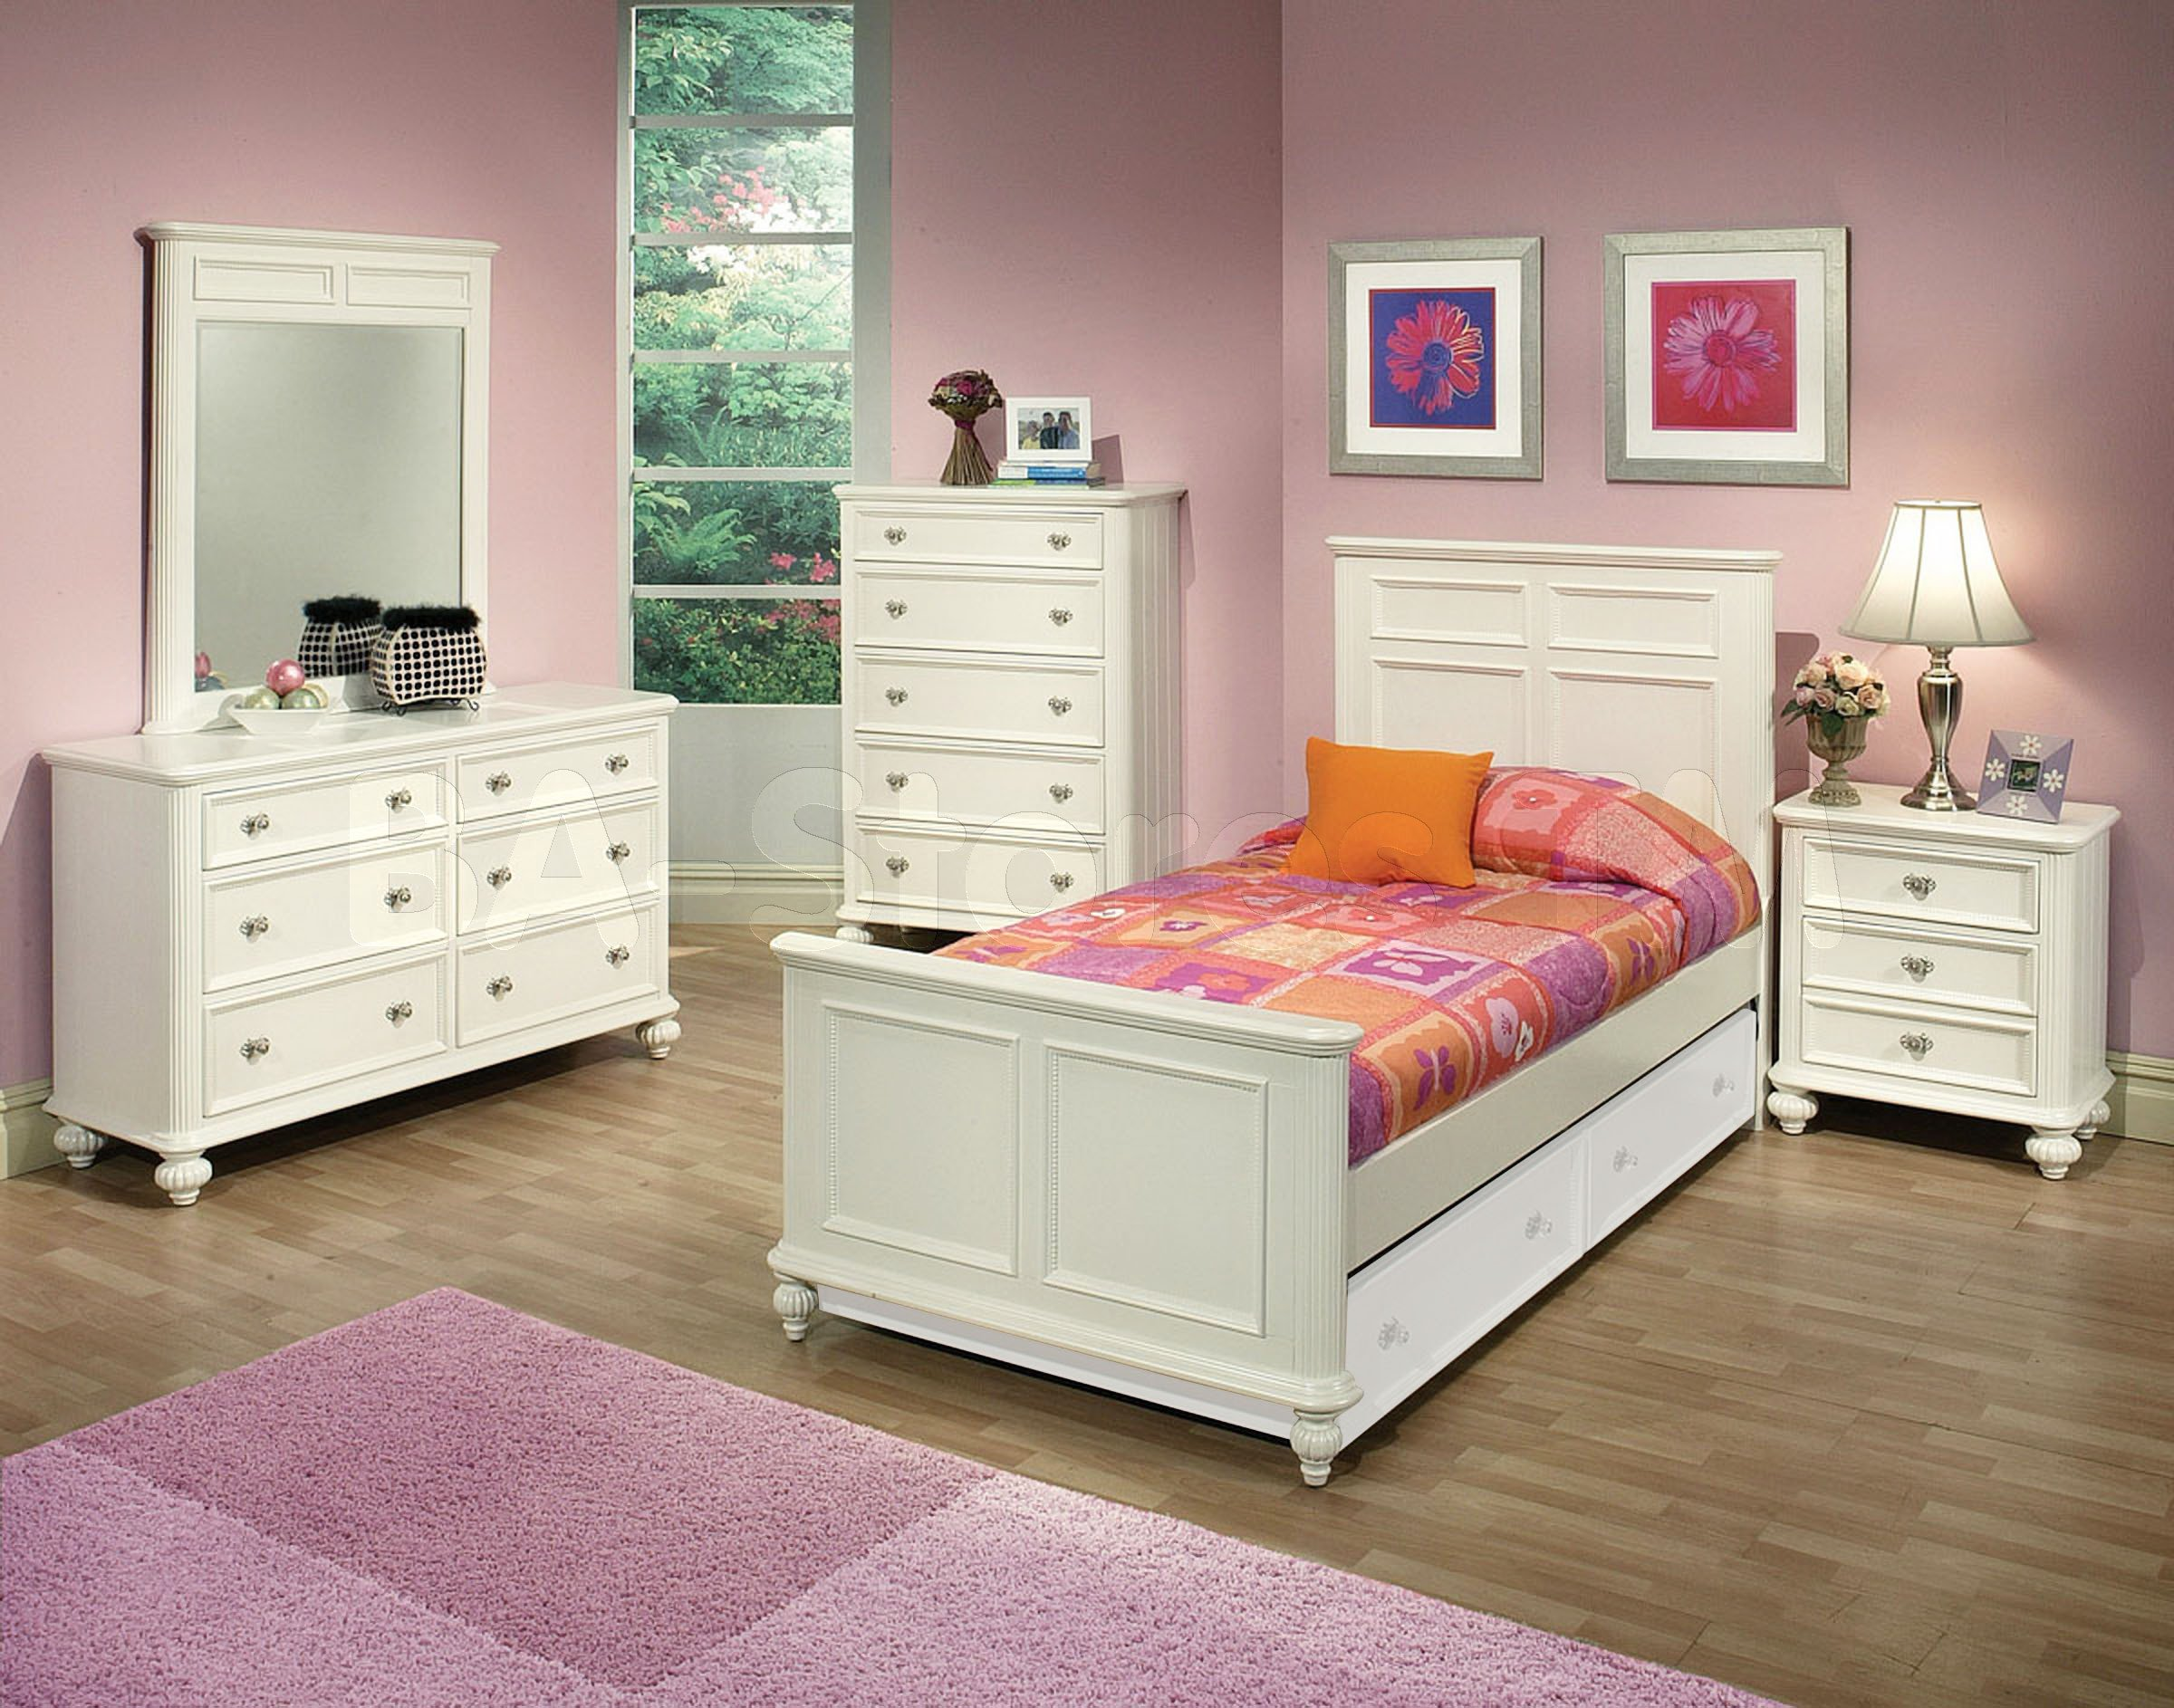 solid wood bedroom furniture for kids 20 tips for best quality kid bedroom furniture buying. Black Bedroom Furniture Sets. Home Design Ideas